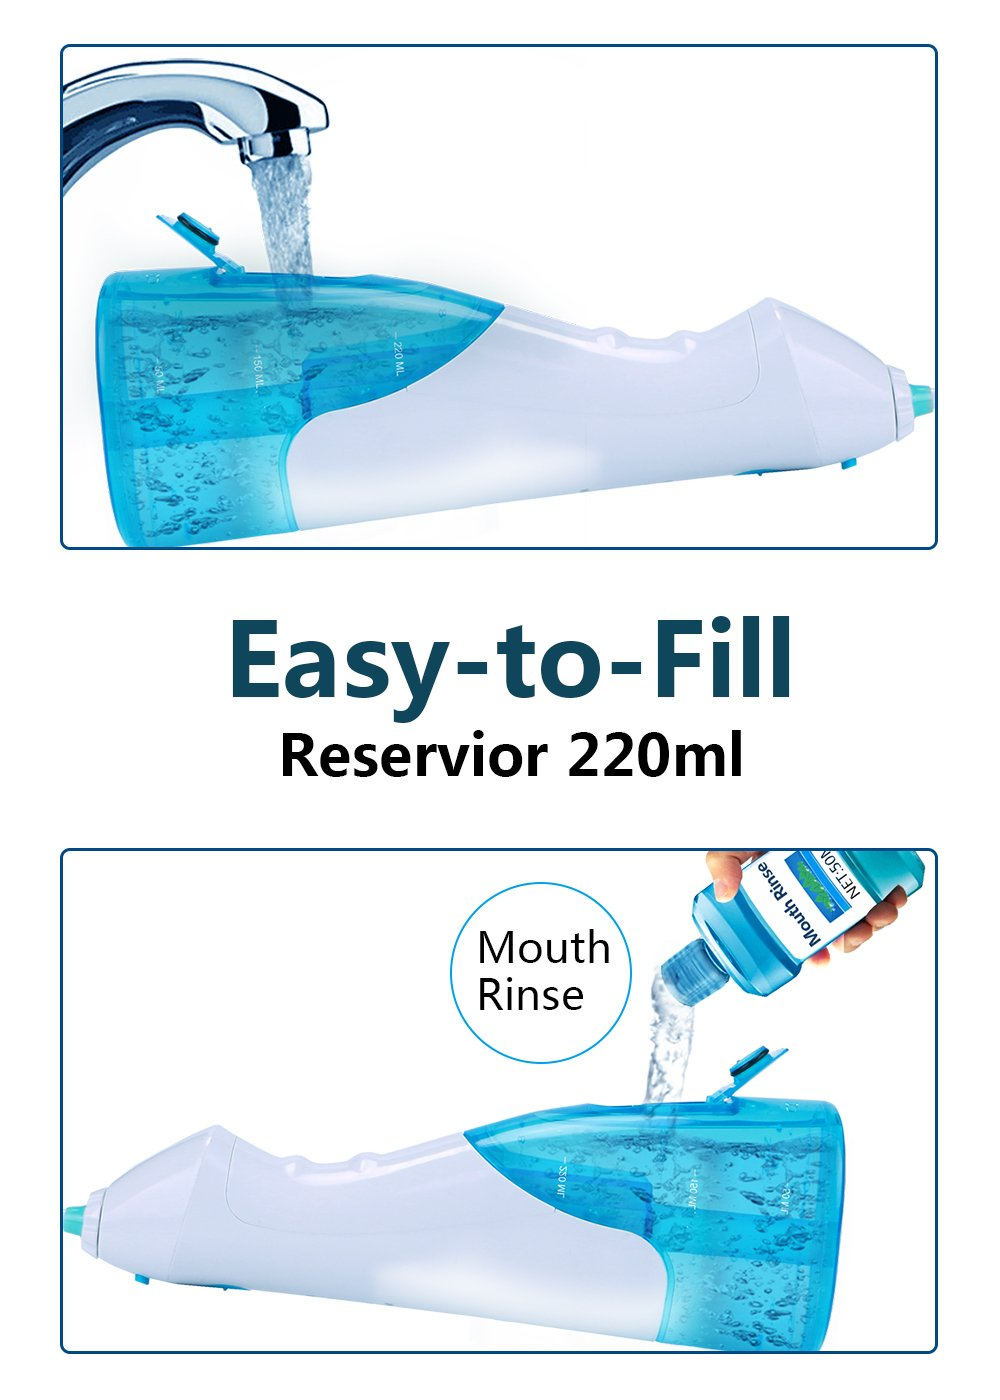 QQcute Water Flosser Cordless Oral Irrigator - IPX7 Portable Rechargeable Tooth Cleaner Whitening With 3 Modes Dental Water Jet Tips, Travel and Home Use by QQcute (Image #7)